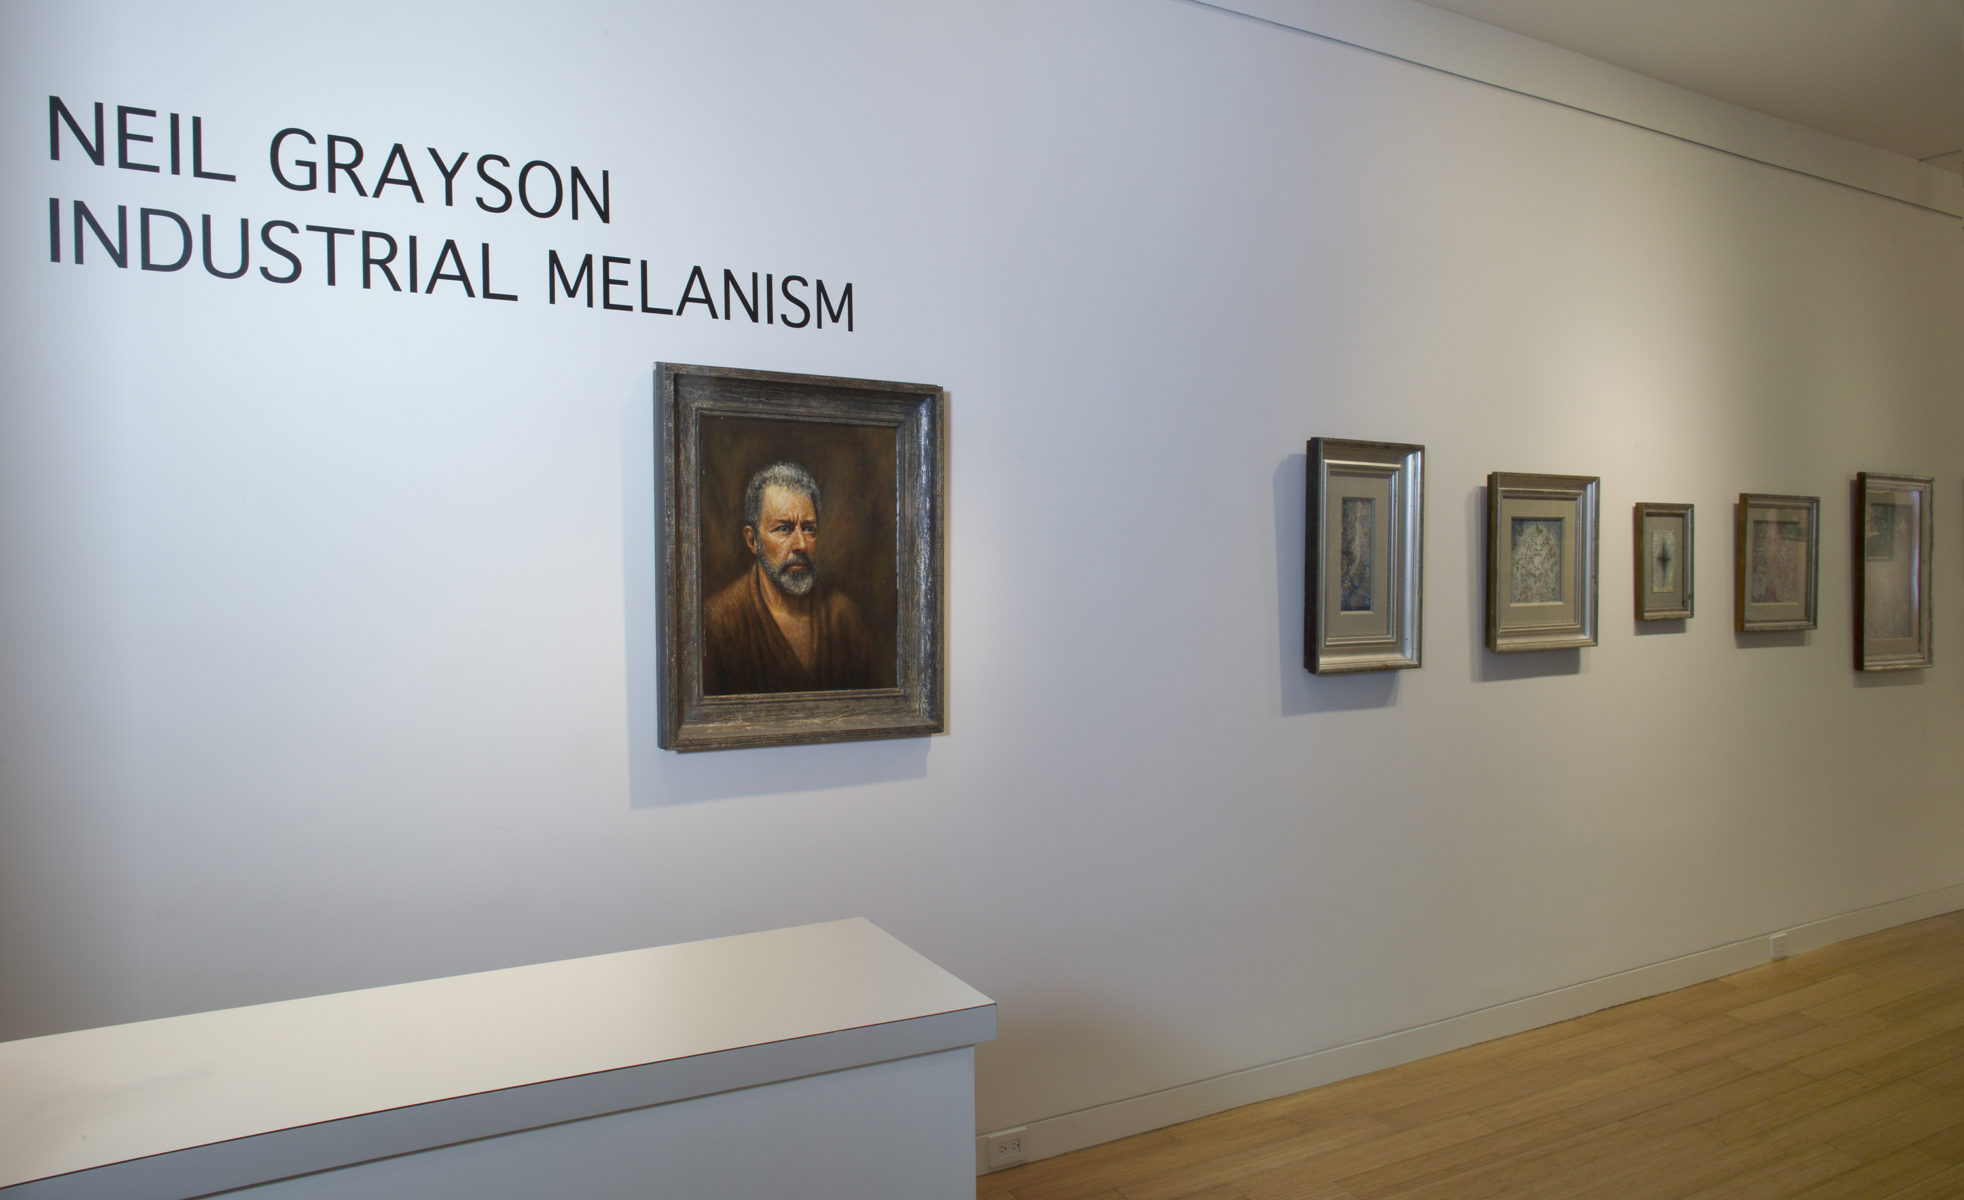 Neil Grayson, Industrial Melanism <br>Solo exhibition at Eykyn Maclean Gallery NYC